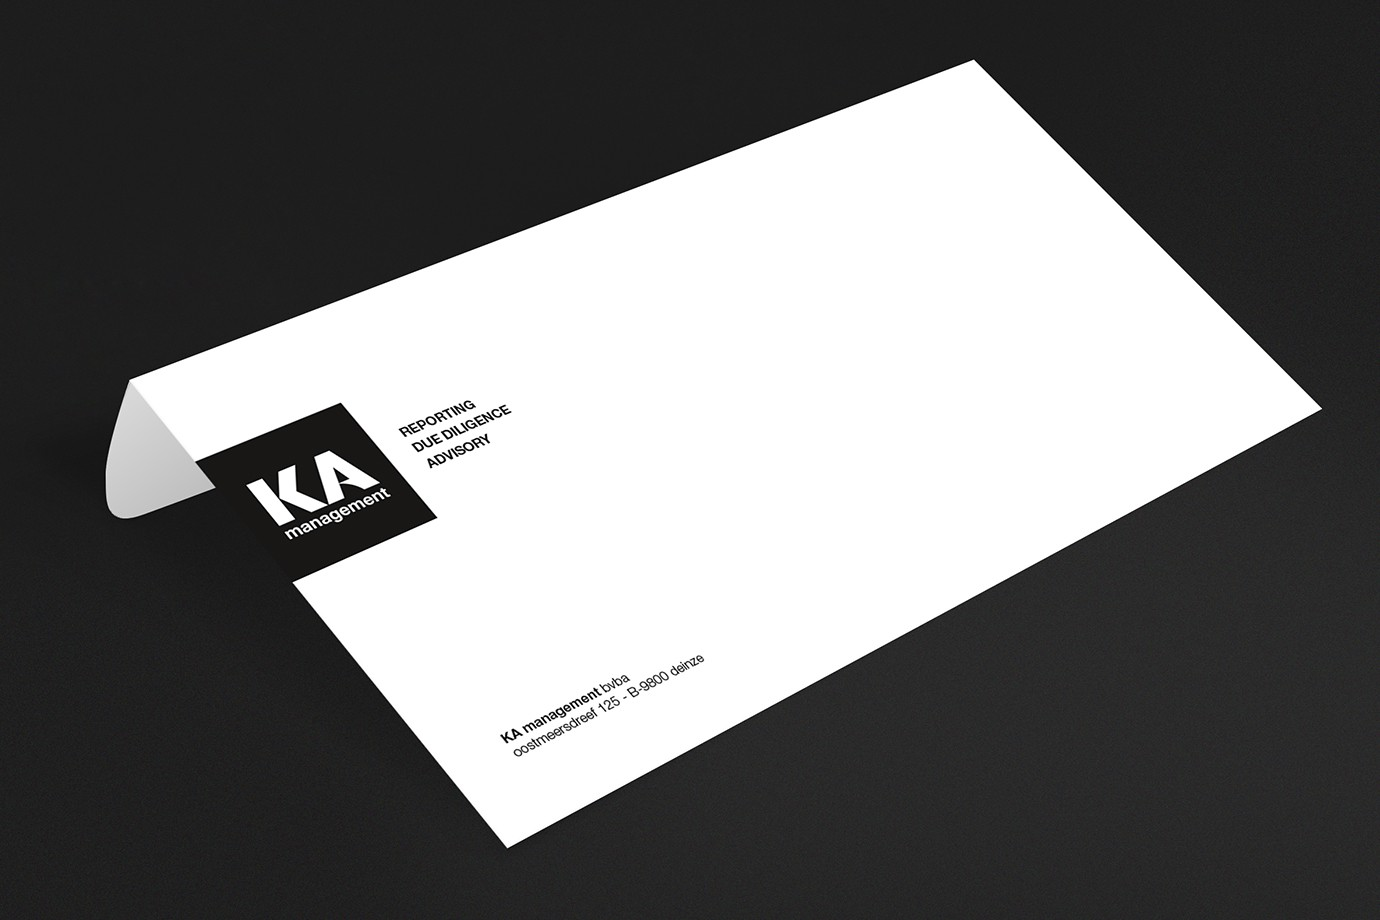 KA management envelop